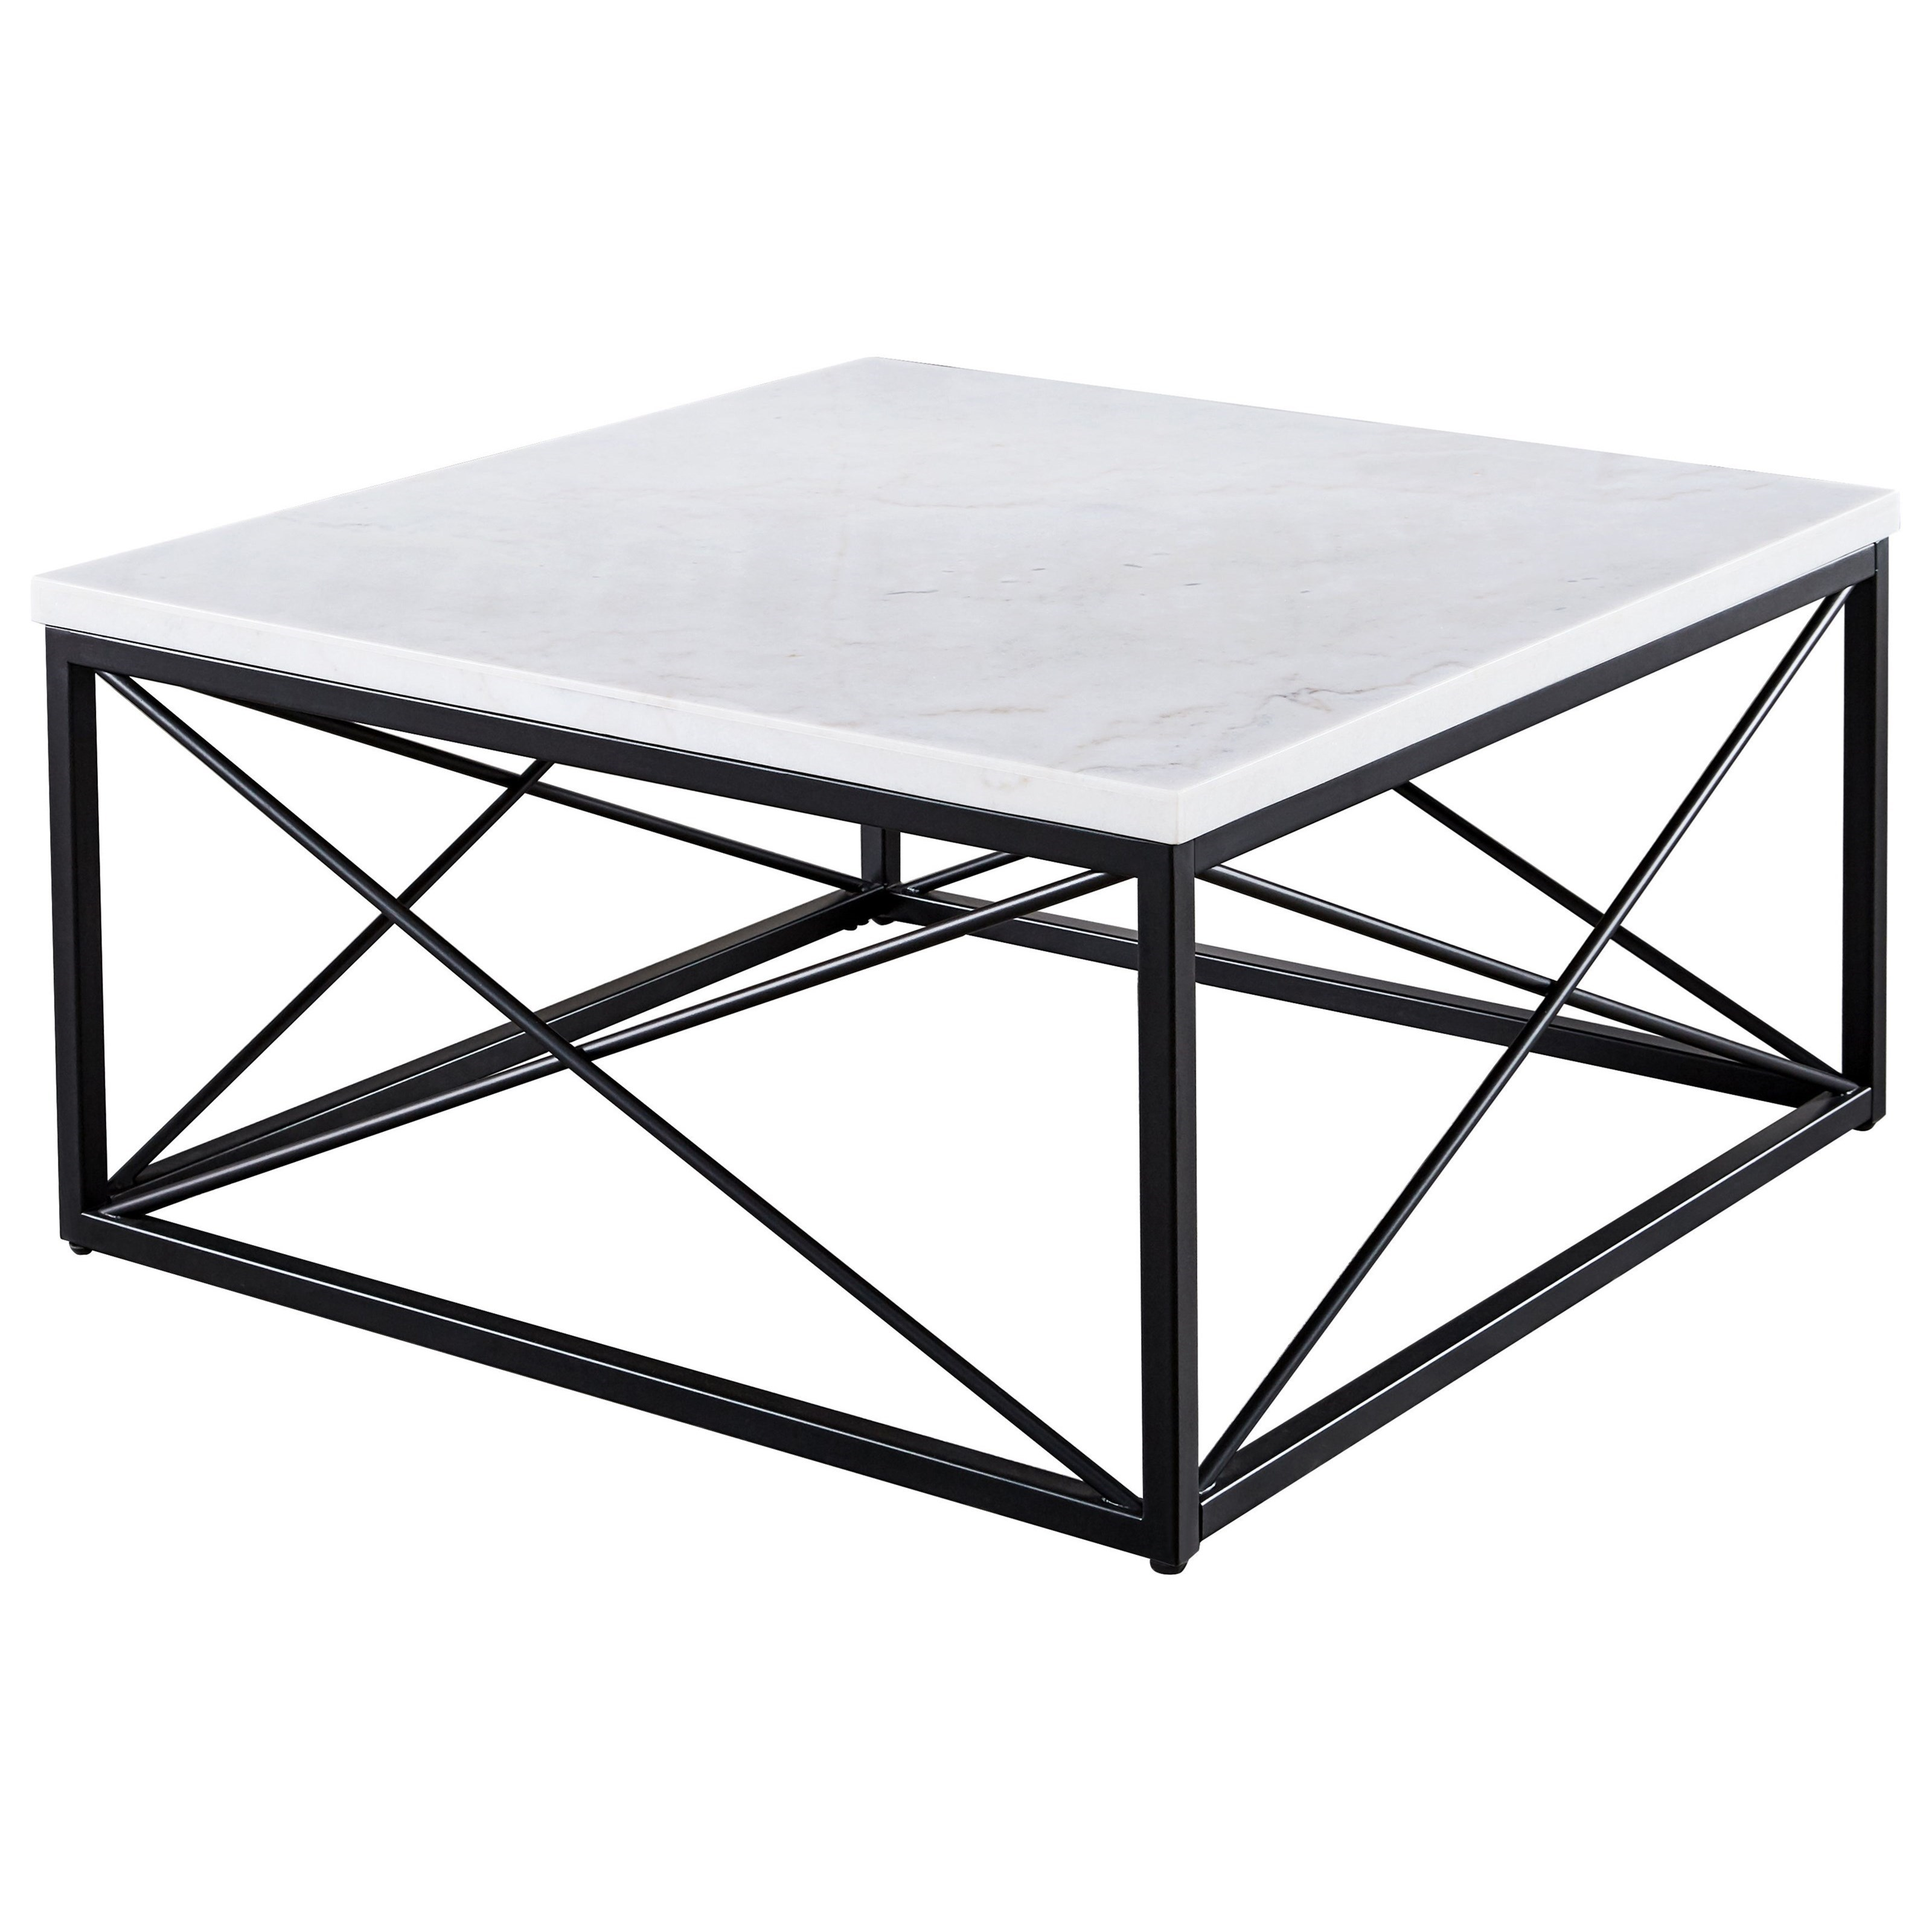 Skyler White Marble Top Square Cocktail Table by Steve Silver at Dream Home Interiors